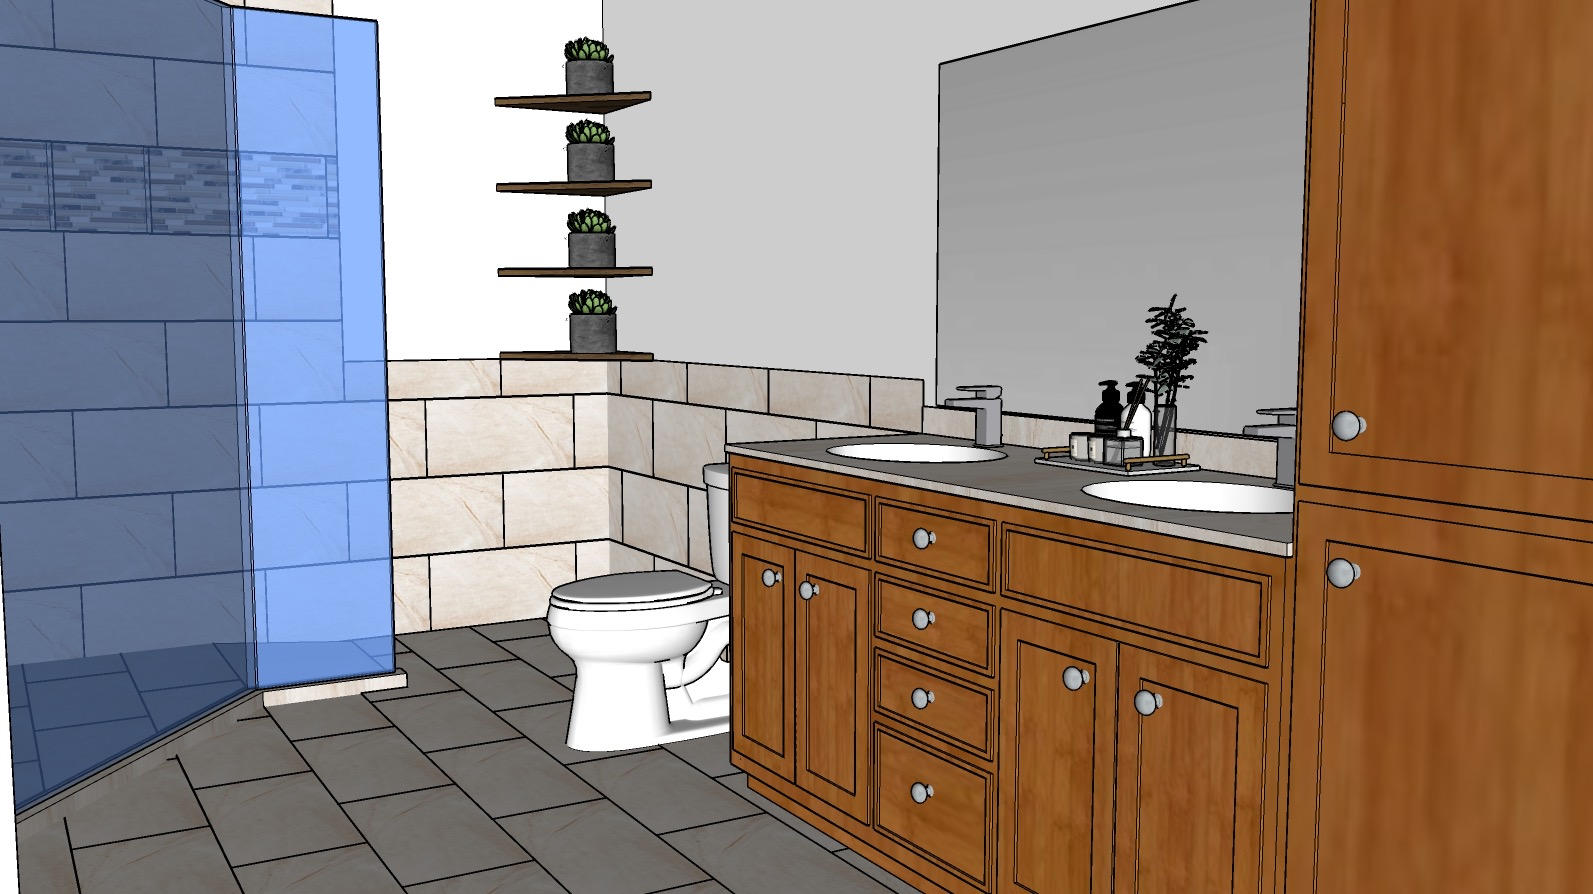 3D Bathroom Remodel Imagery